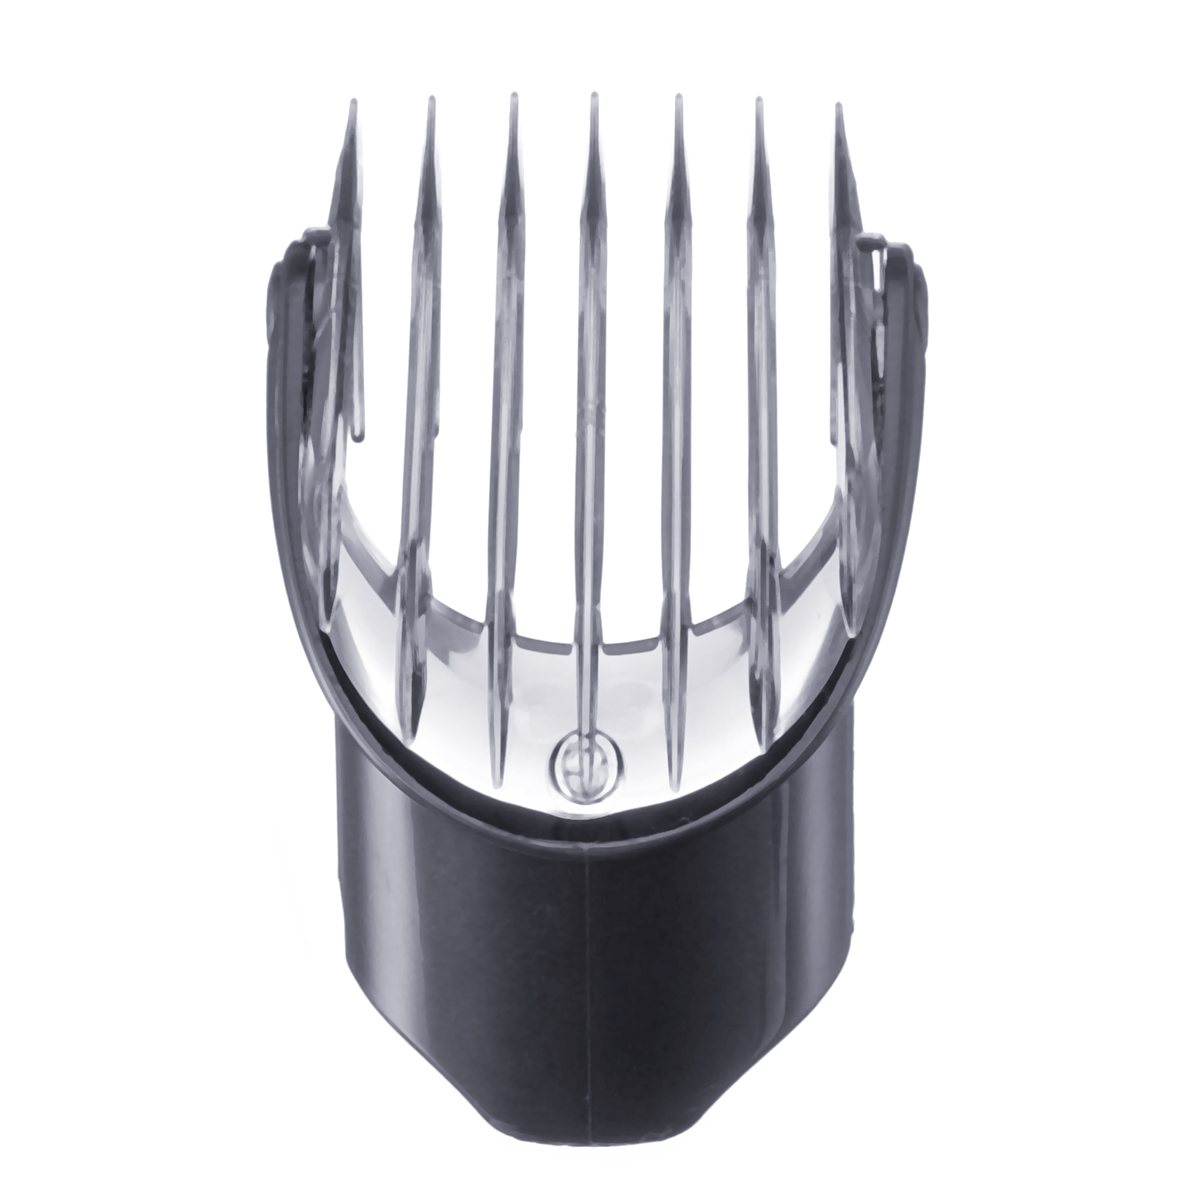 Hair Clipper Guide Comb 3-21mm Electric Trimmer Comb